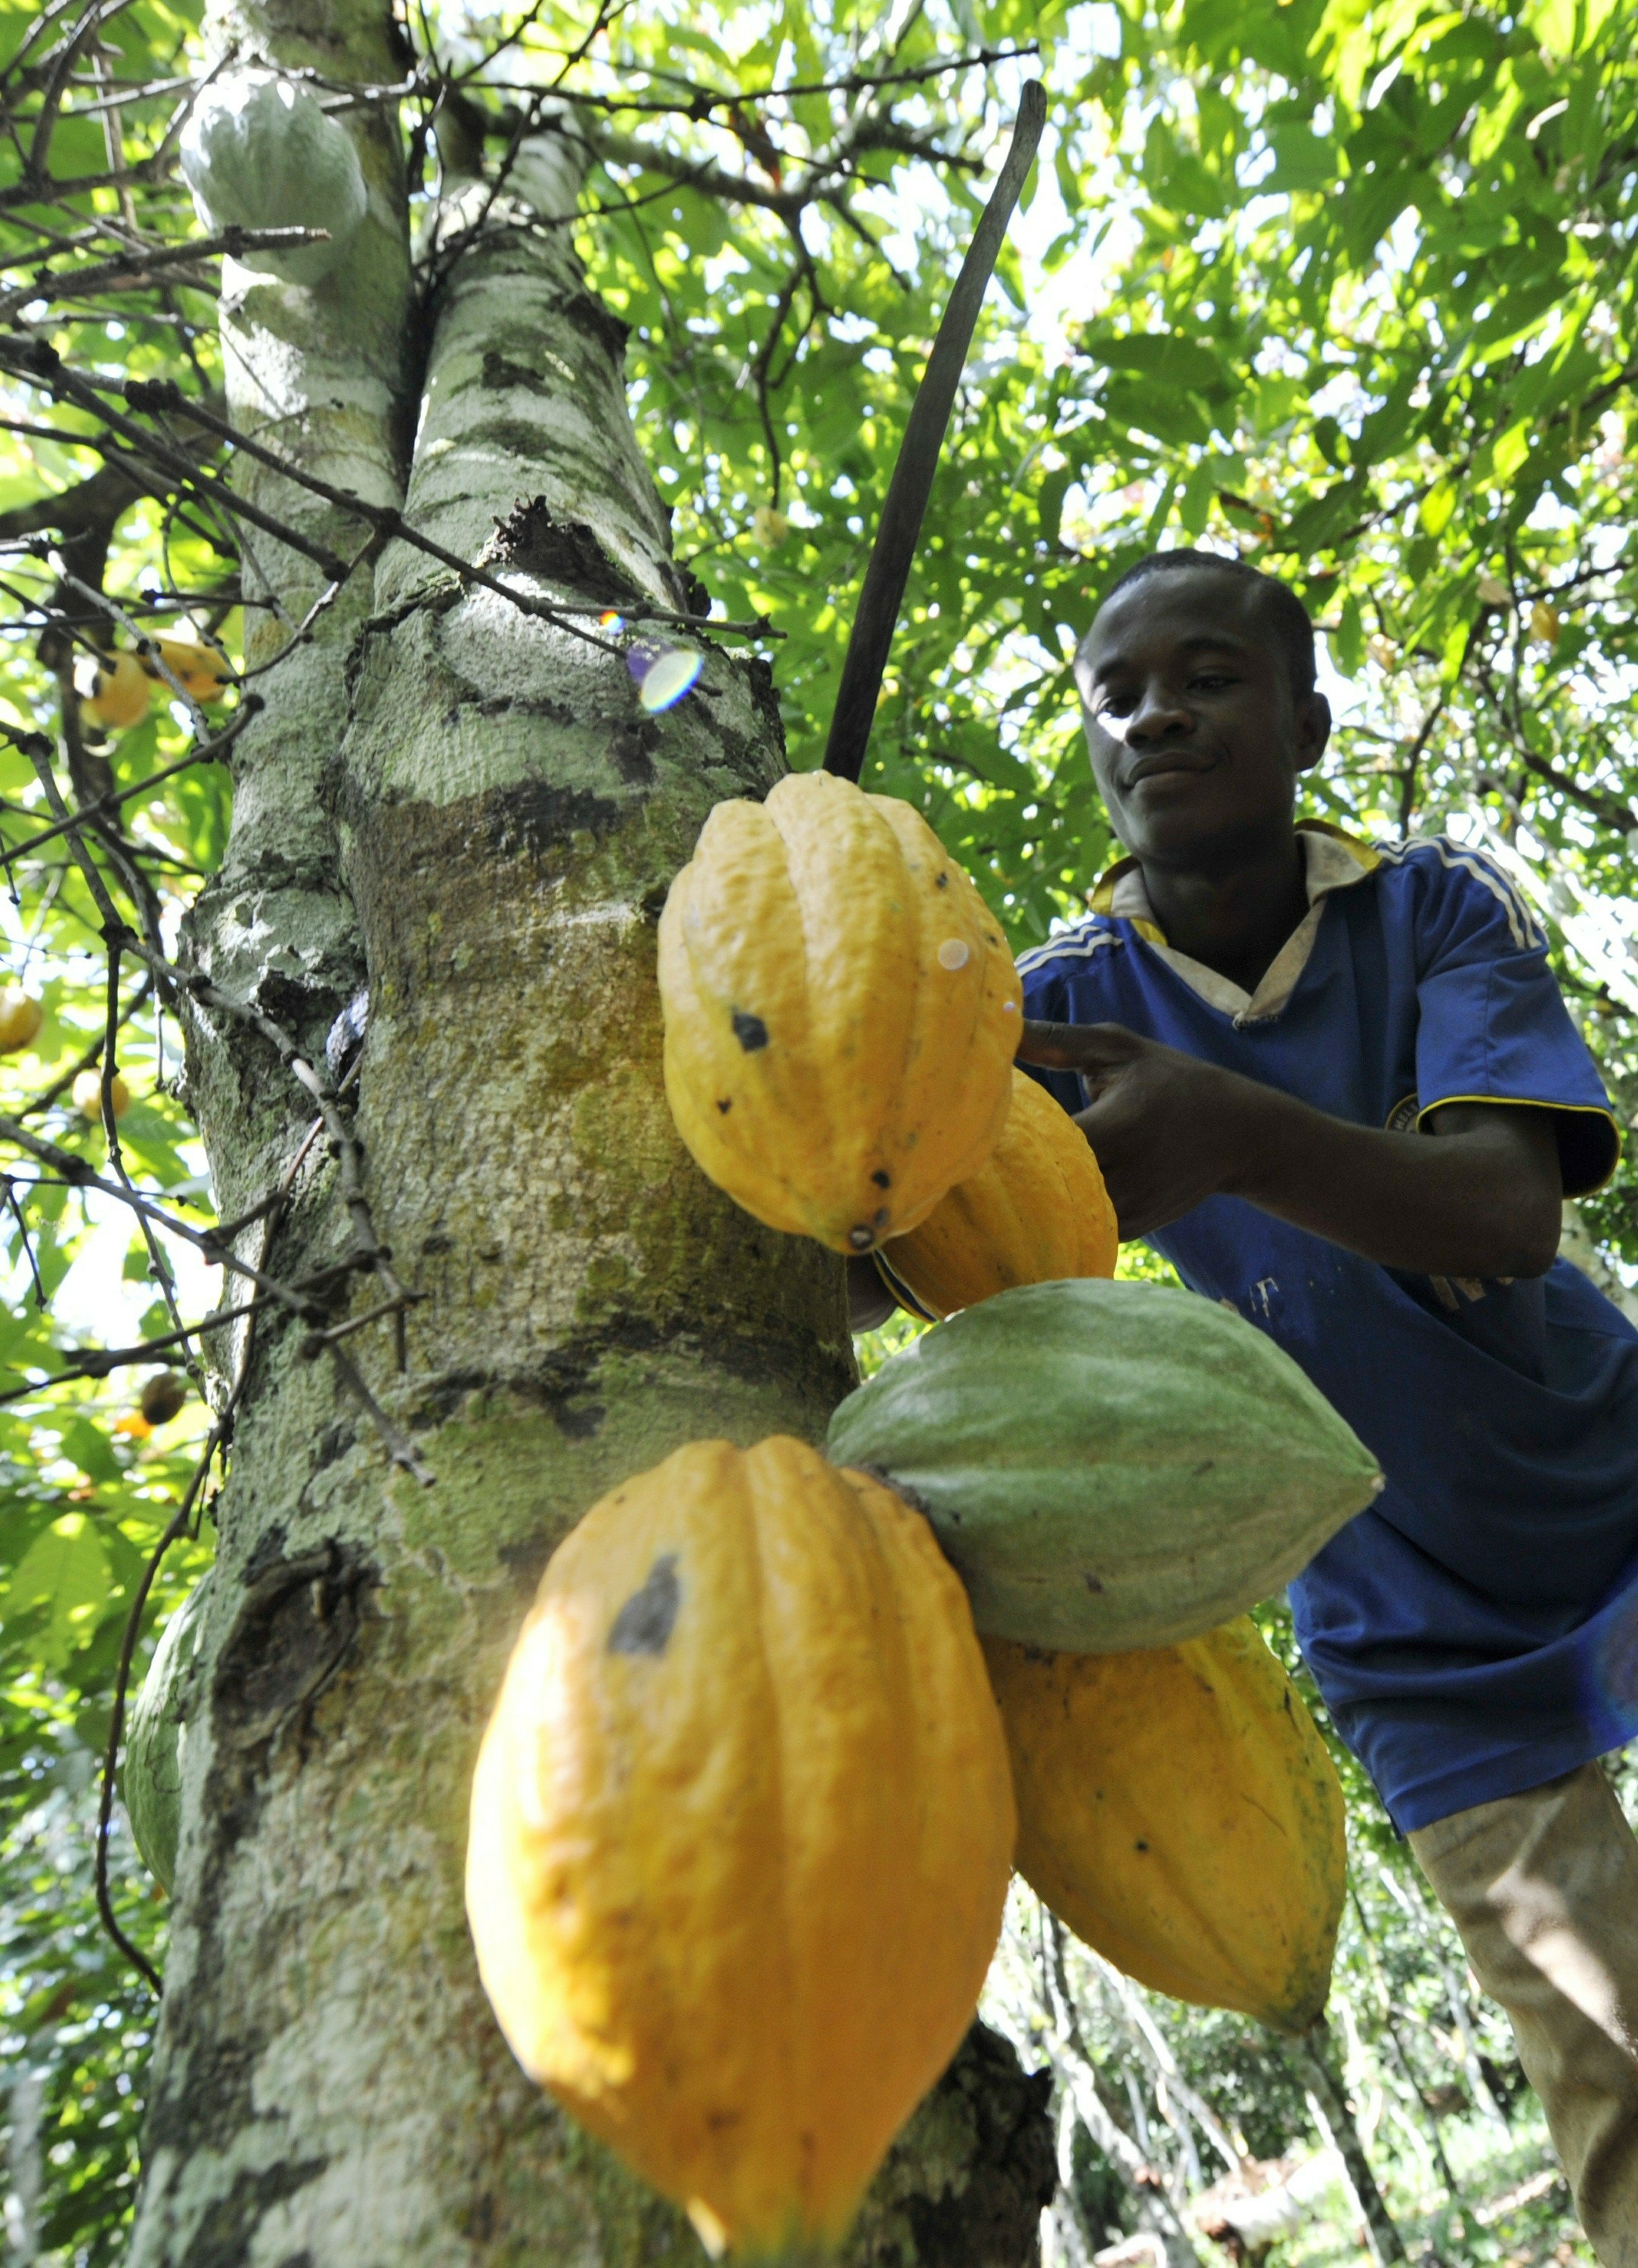 A file photo taken on October 25, 2010 shows a young employee harvesting beans from a cocoa tree in Amichiakro, a cocoa plantation in Divo.